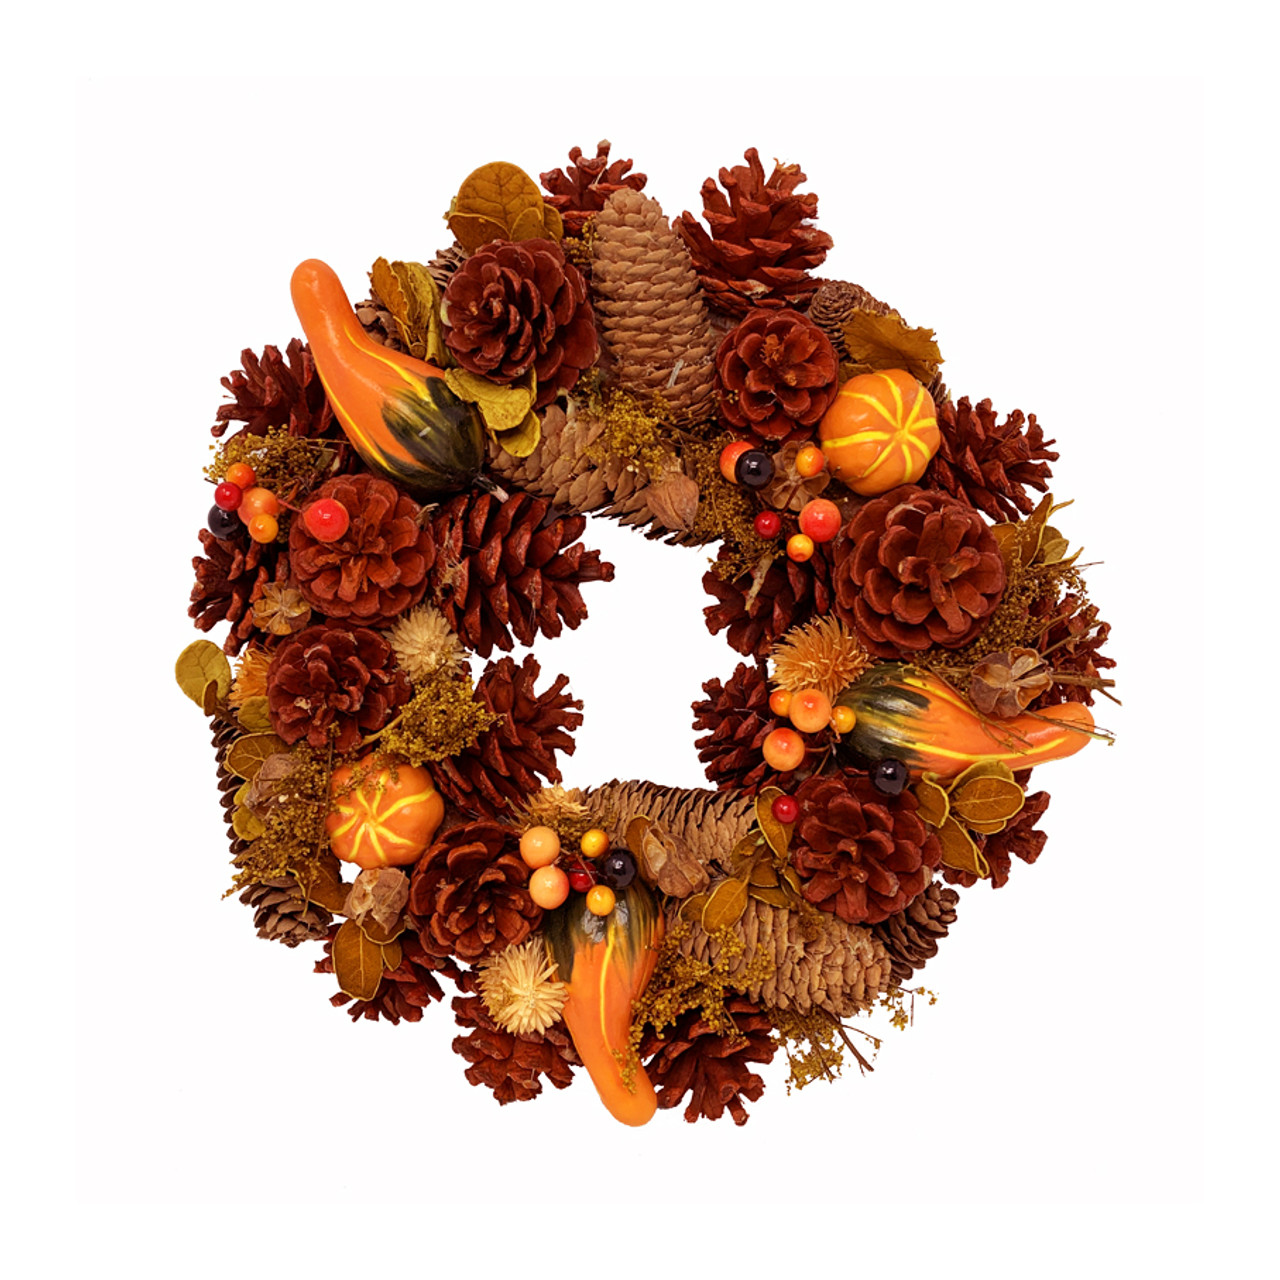 Autumn Wreath With Artificial Fruits Dried Flowers And Cones 30cm 12in